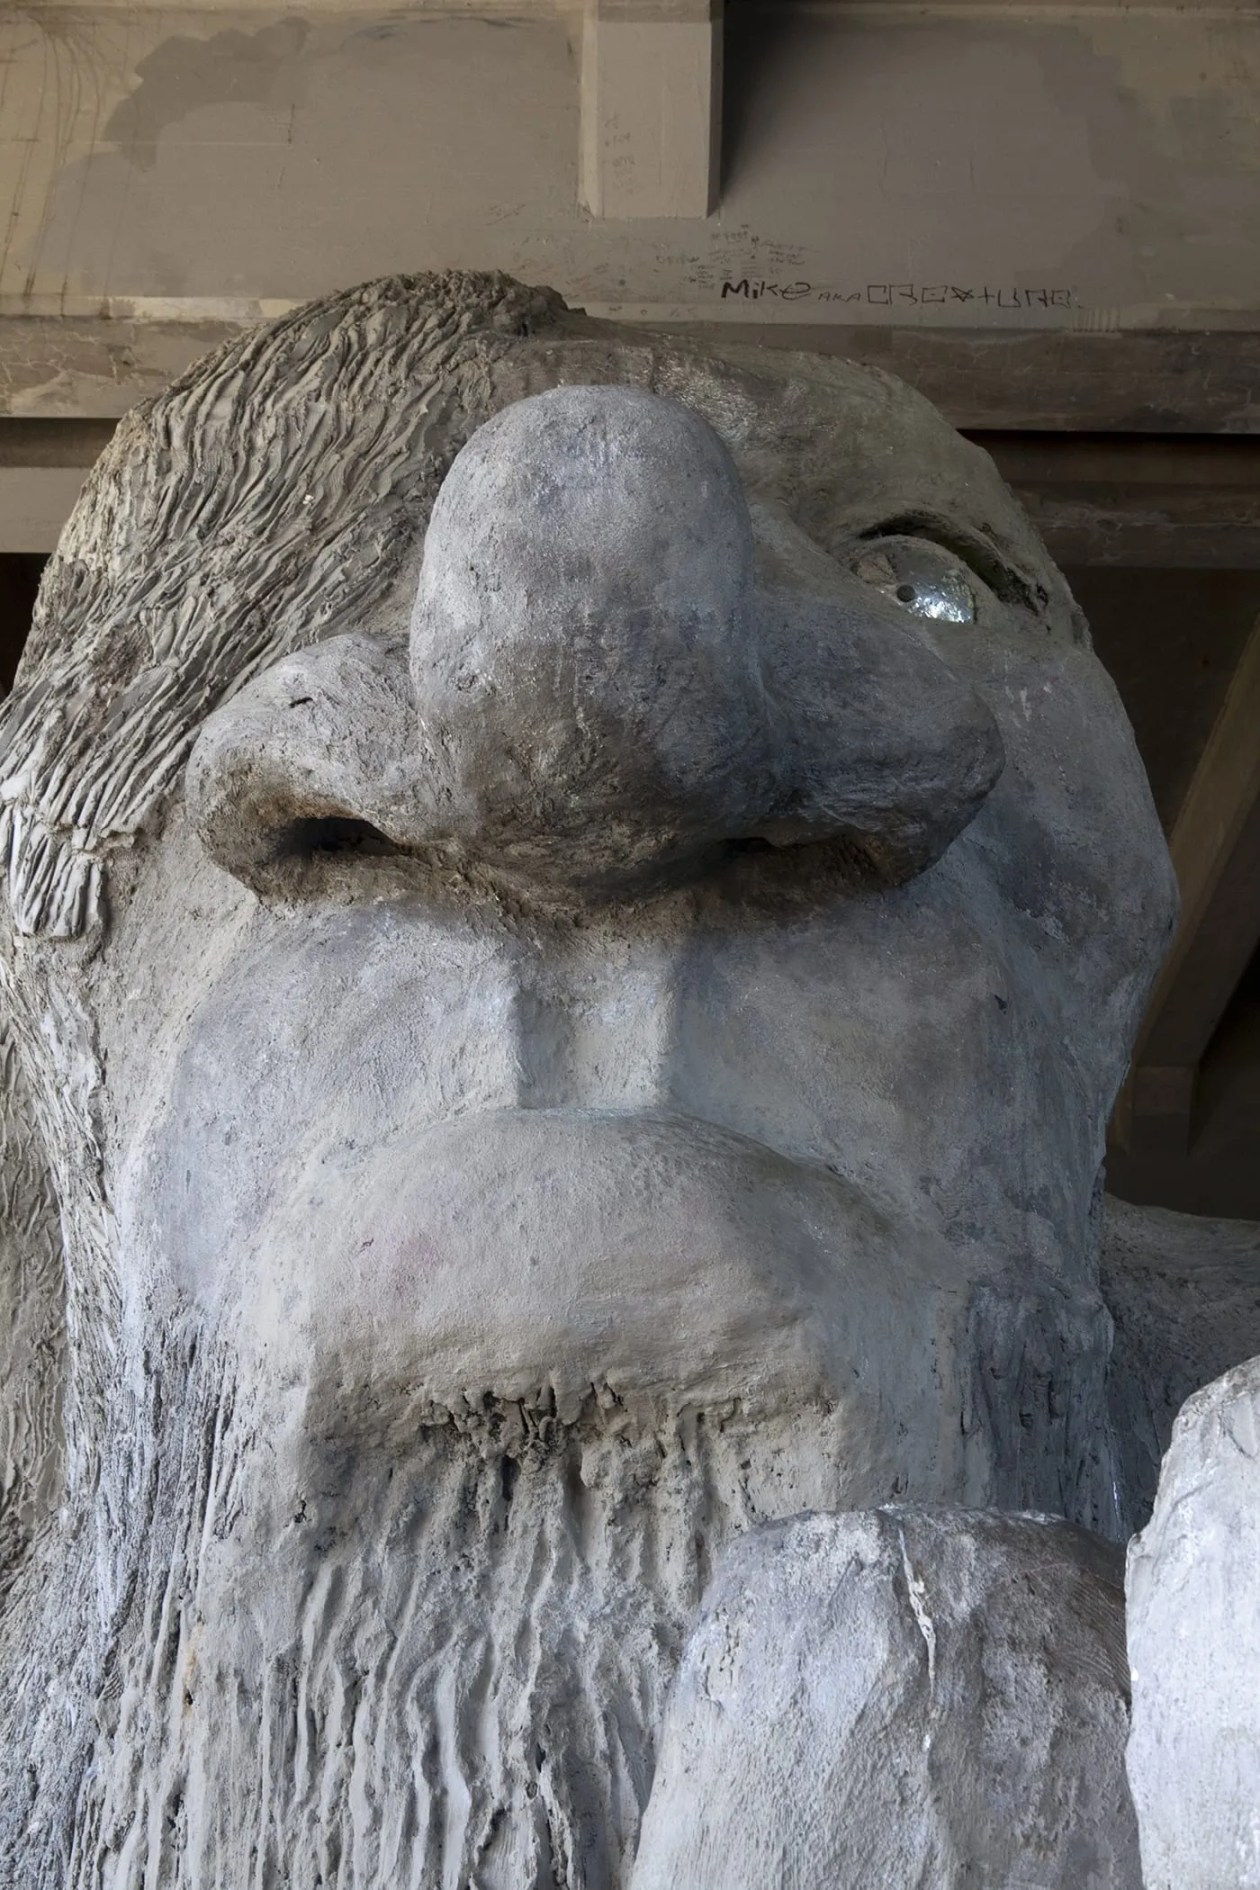 The Fremont Troll, a roadside attraction in Seattle, Washington.